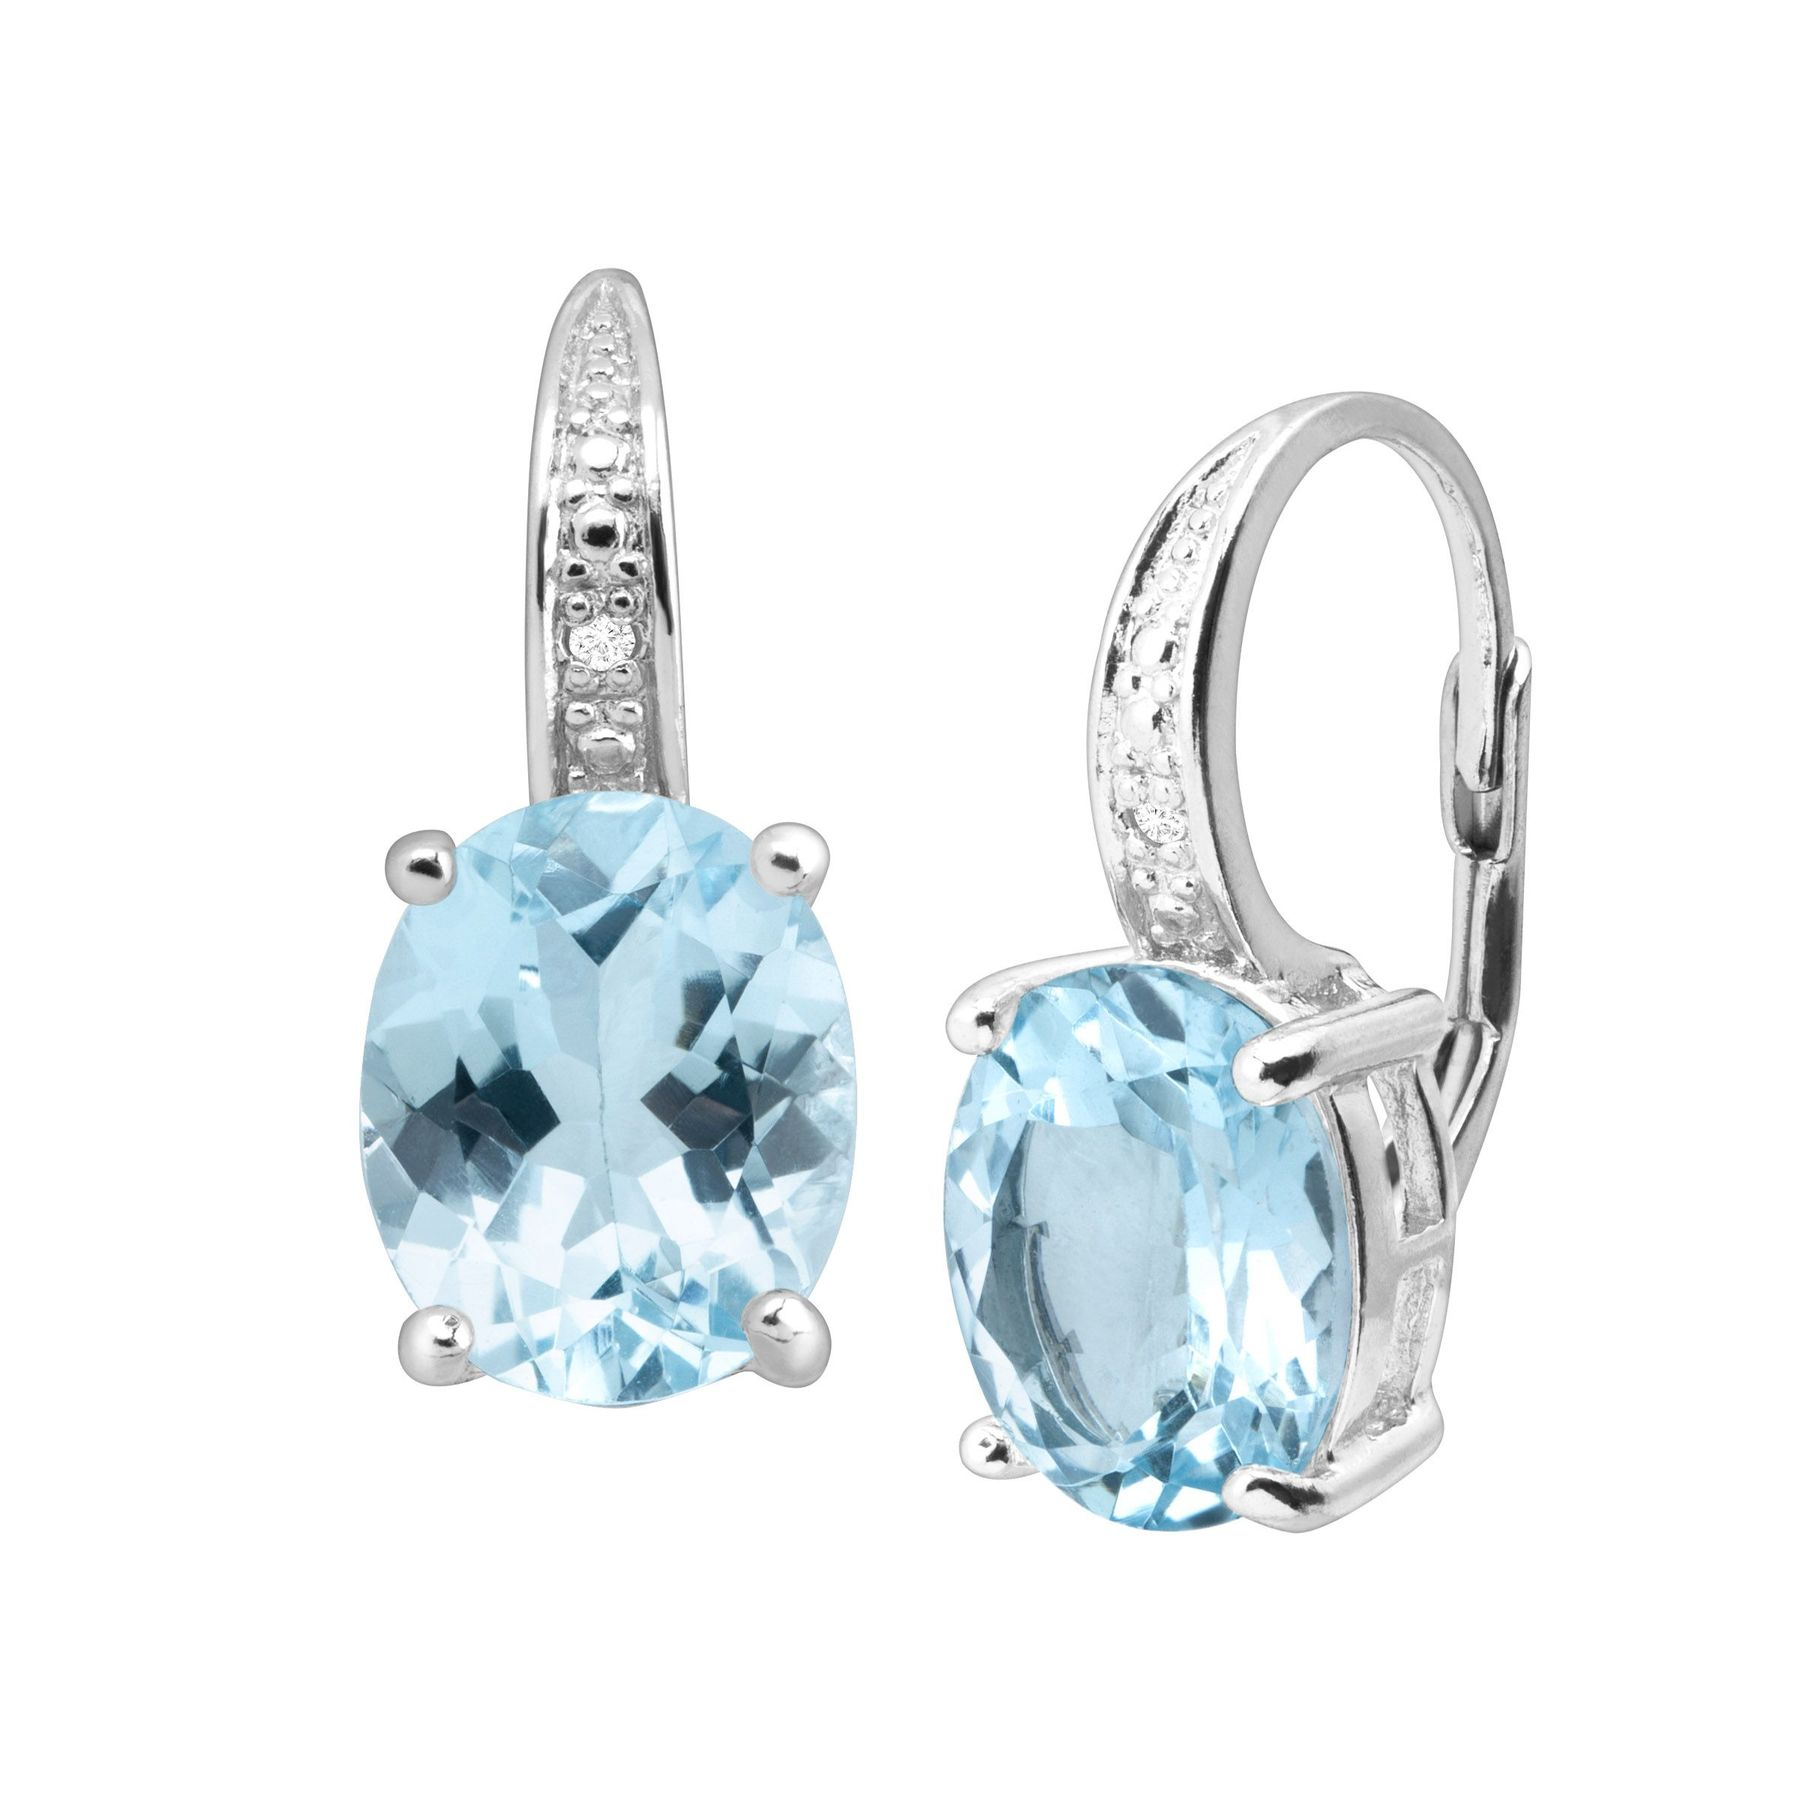 joseph blue topaz jewelers greenwich st jewelry jewellery jamie earrings